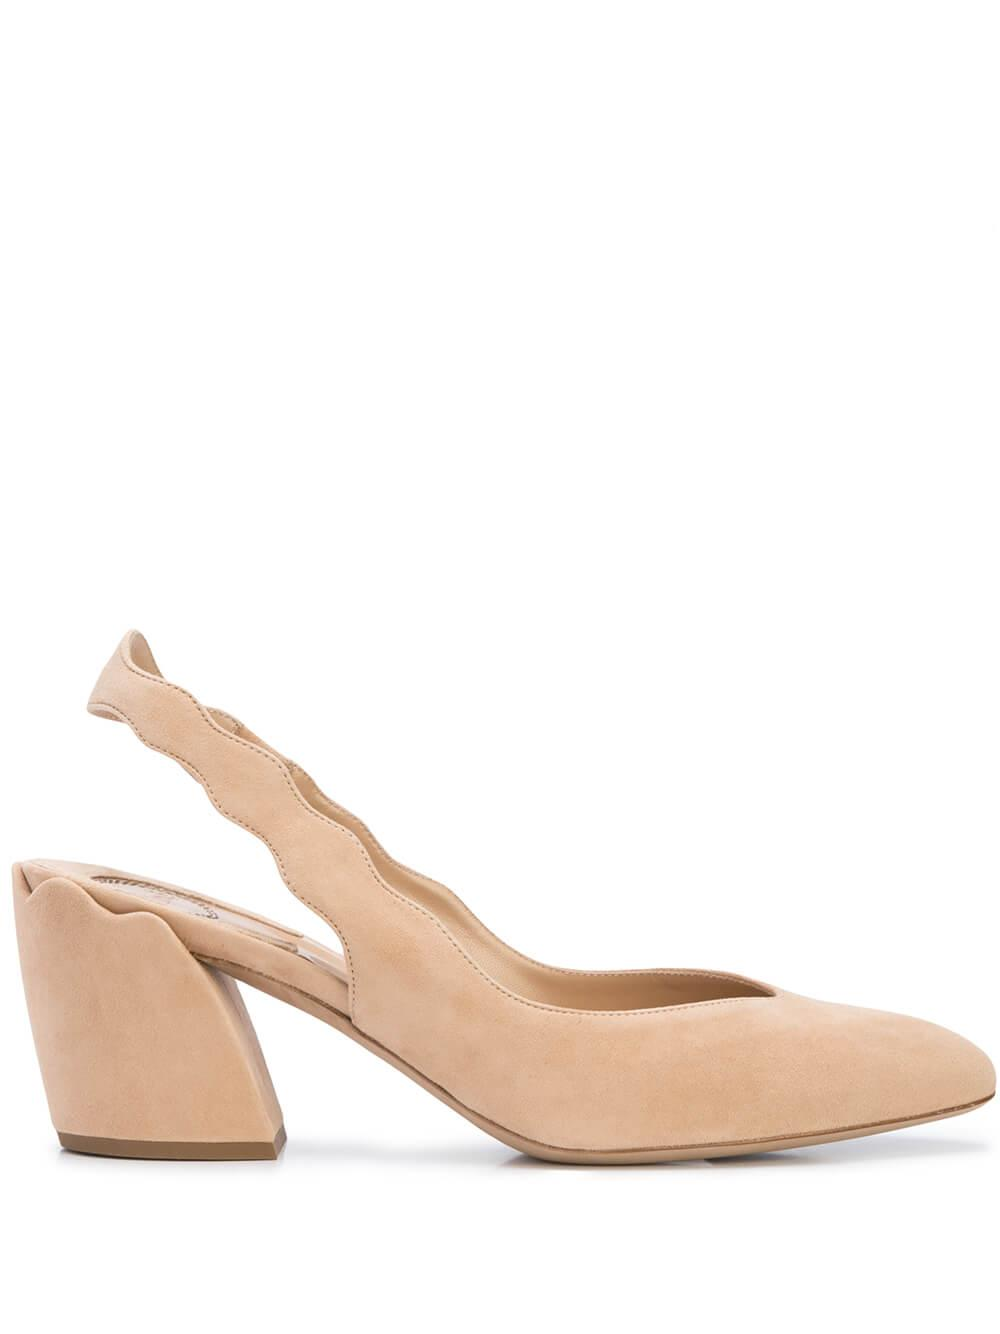 Laurena Suede 60mm Sling Back Pump Item # CHC20S2870126U